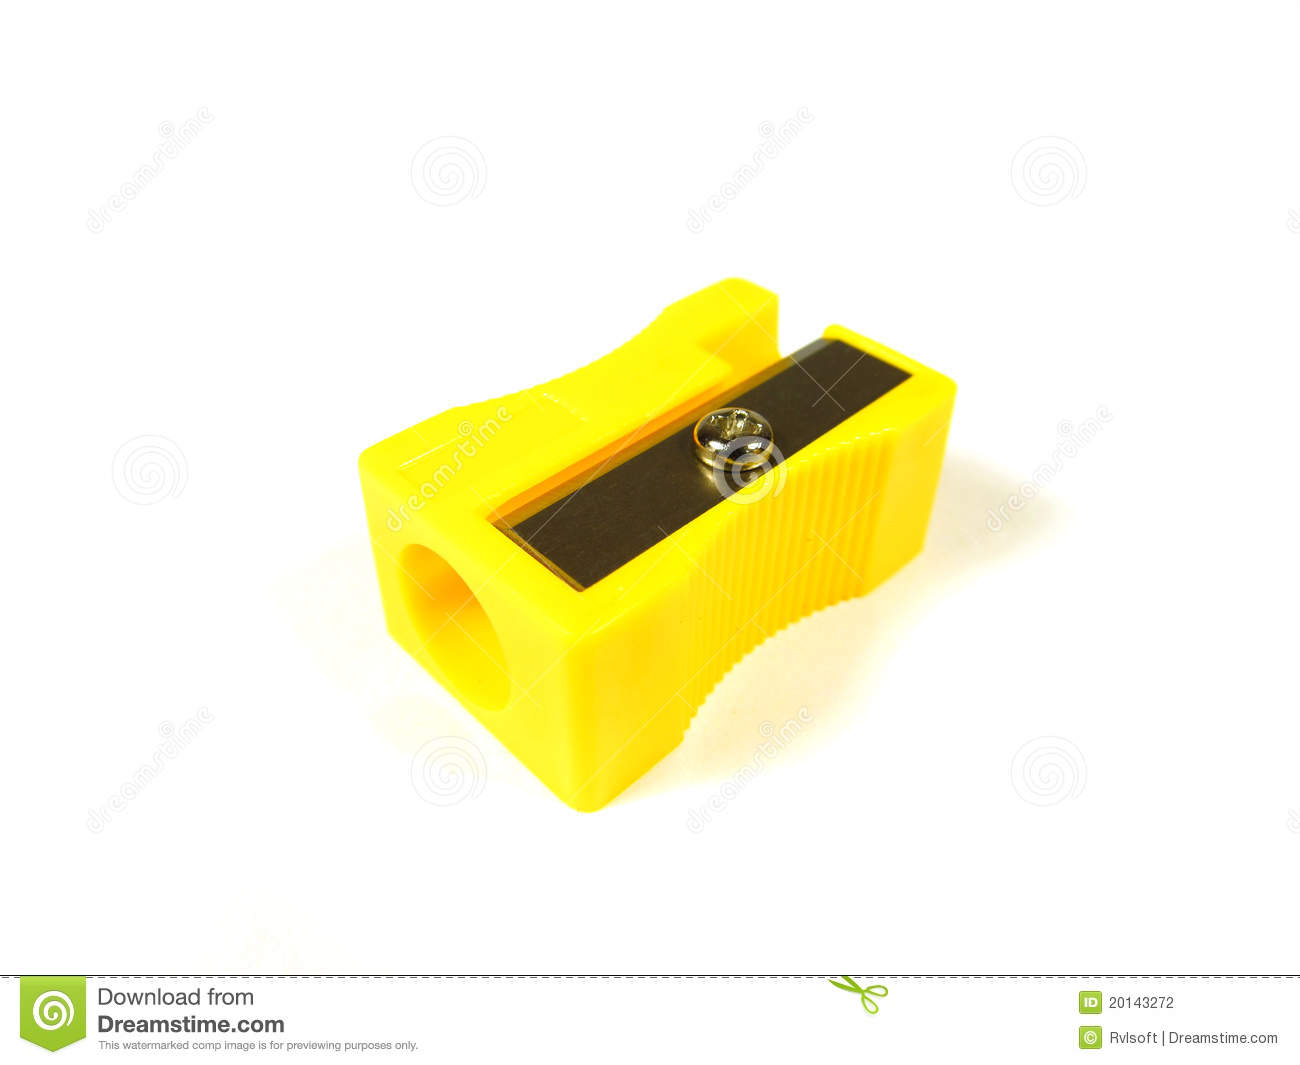 Yellow pencill sharpener stock photo. Image of education - 20143272